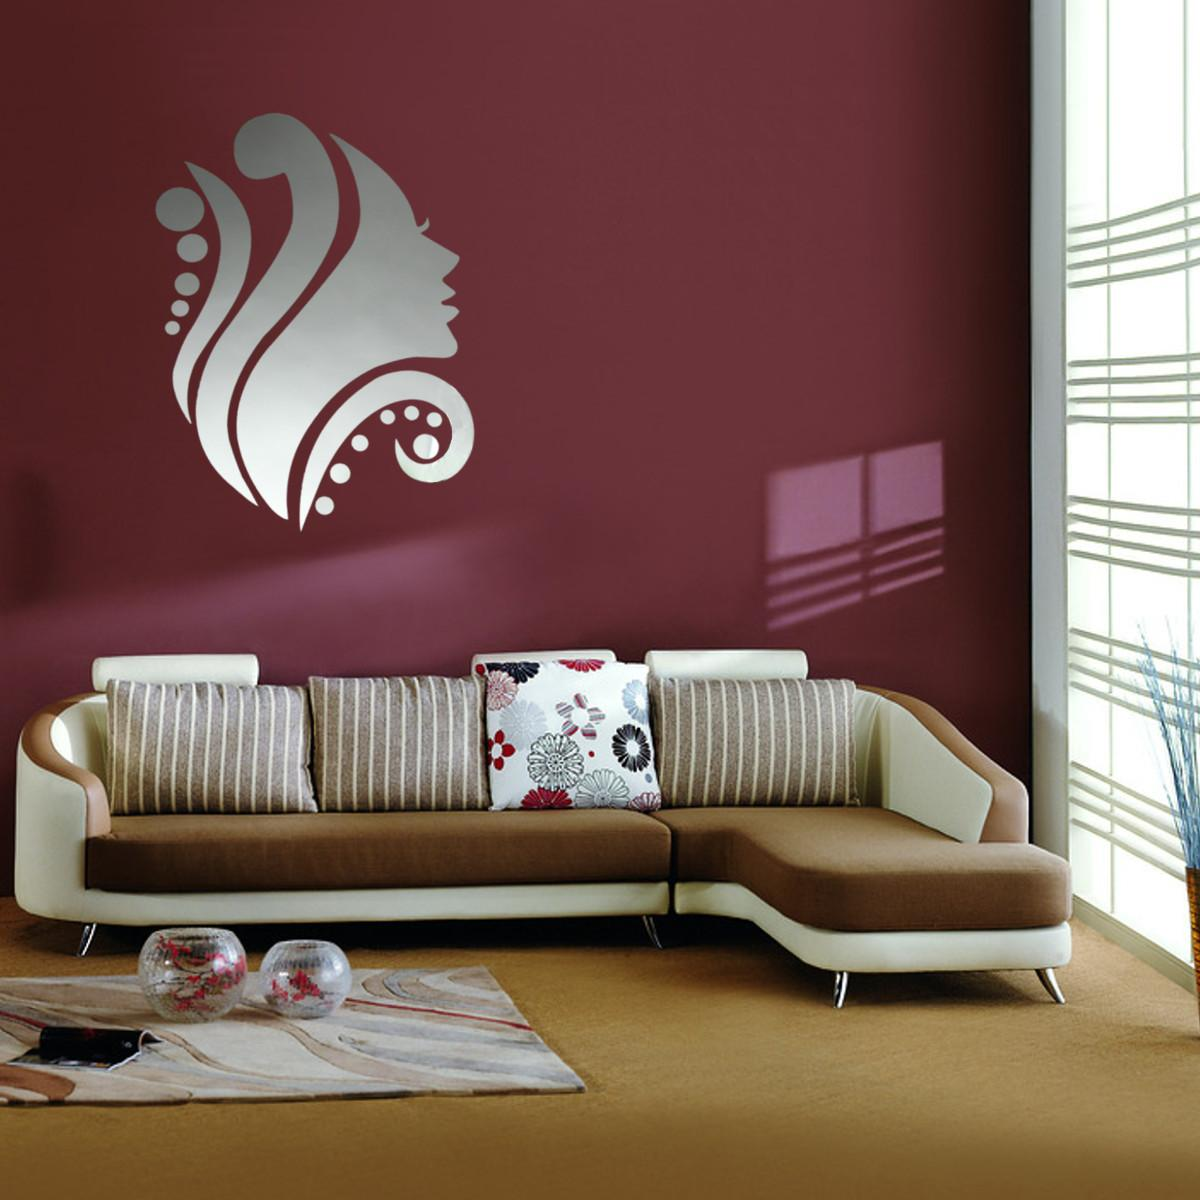 Diy Silver Mirror Surface Wall Sticker Mural Decal Art